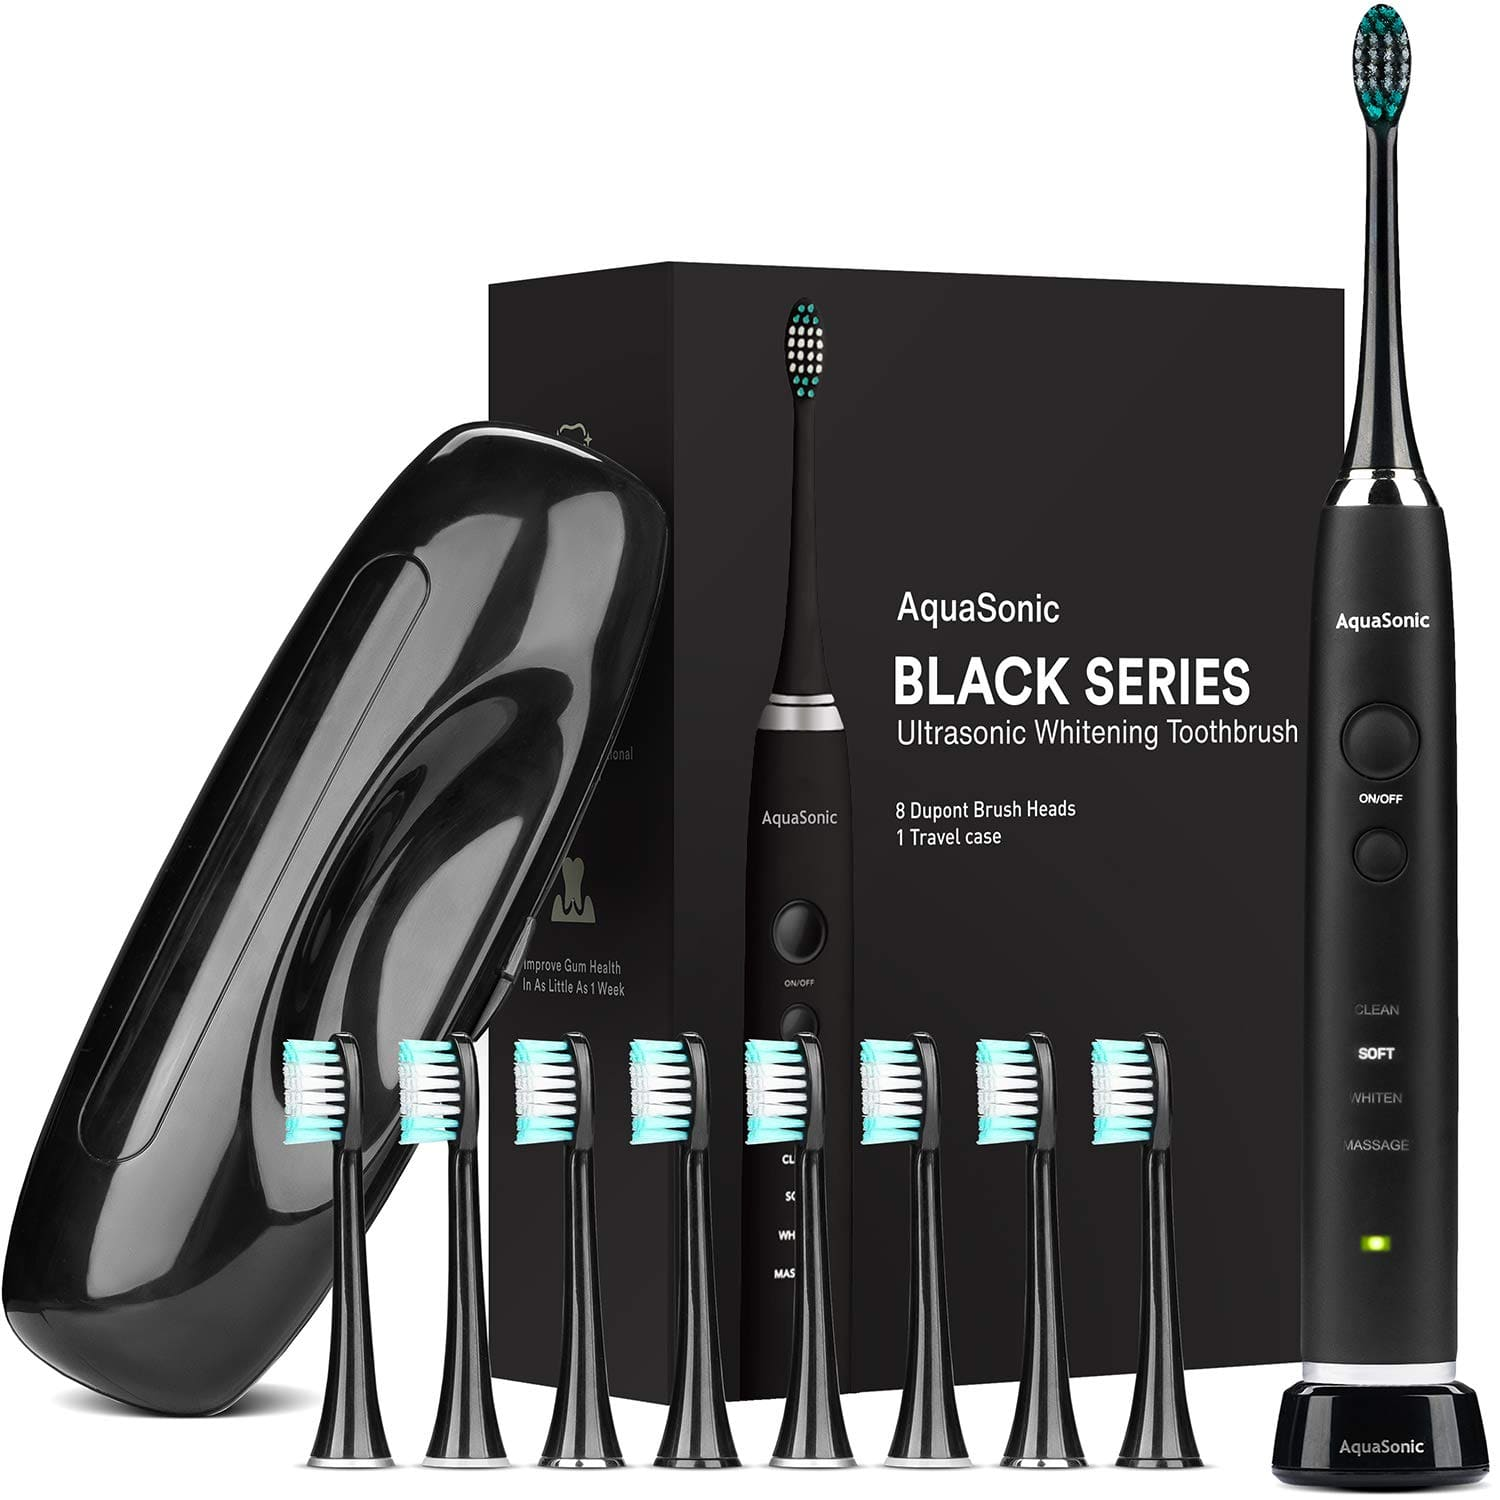 AquaSonic Black Series Ultra Whitening Toothbrush - 8 DuPont Brush Heads & Travel Case Included - $25.15 FS